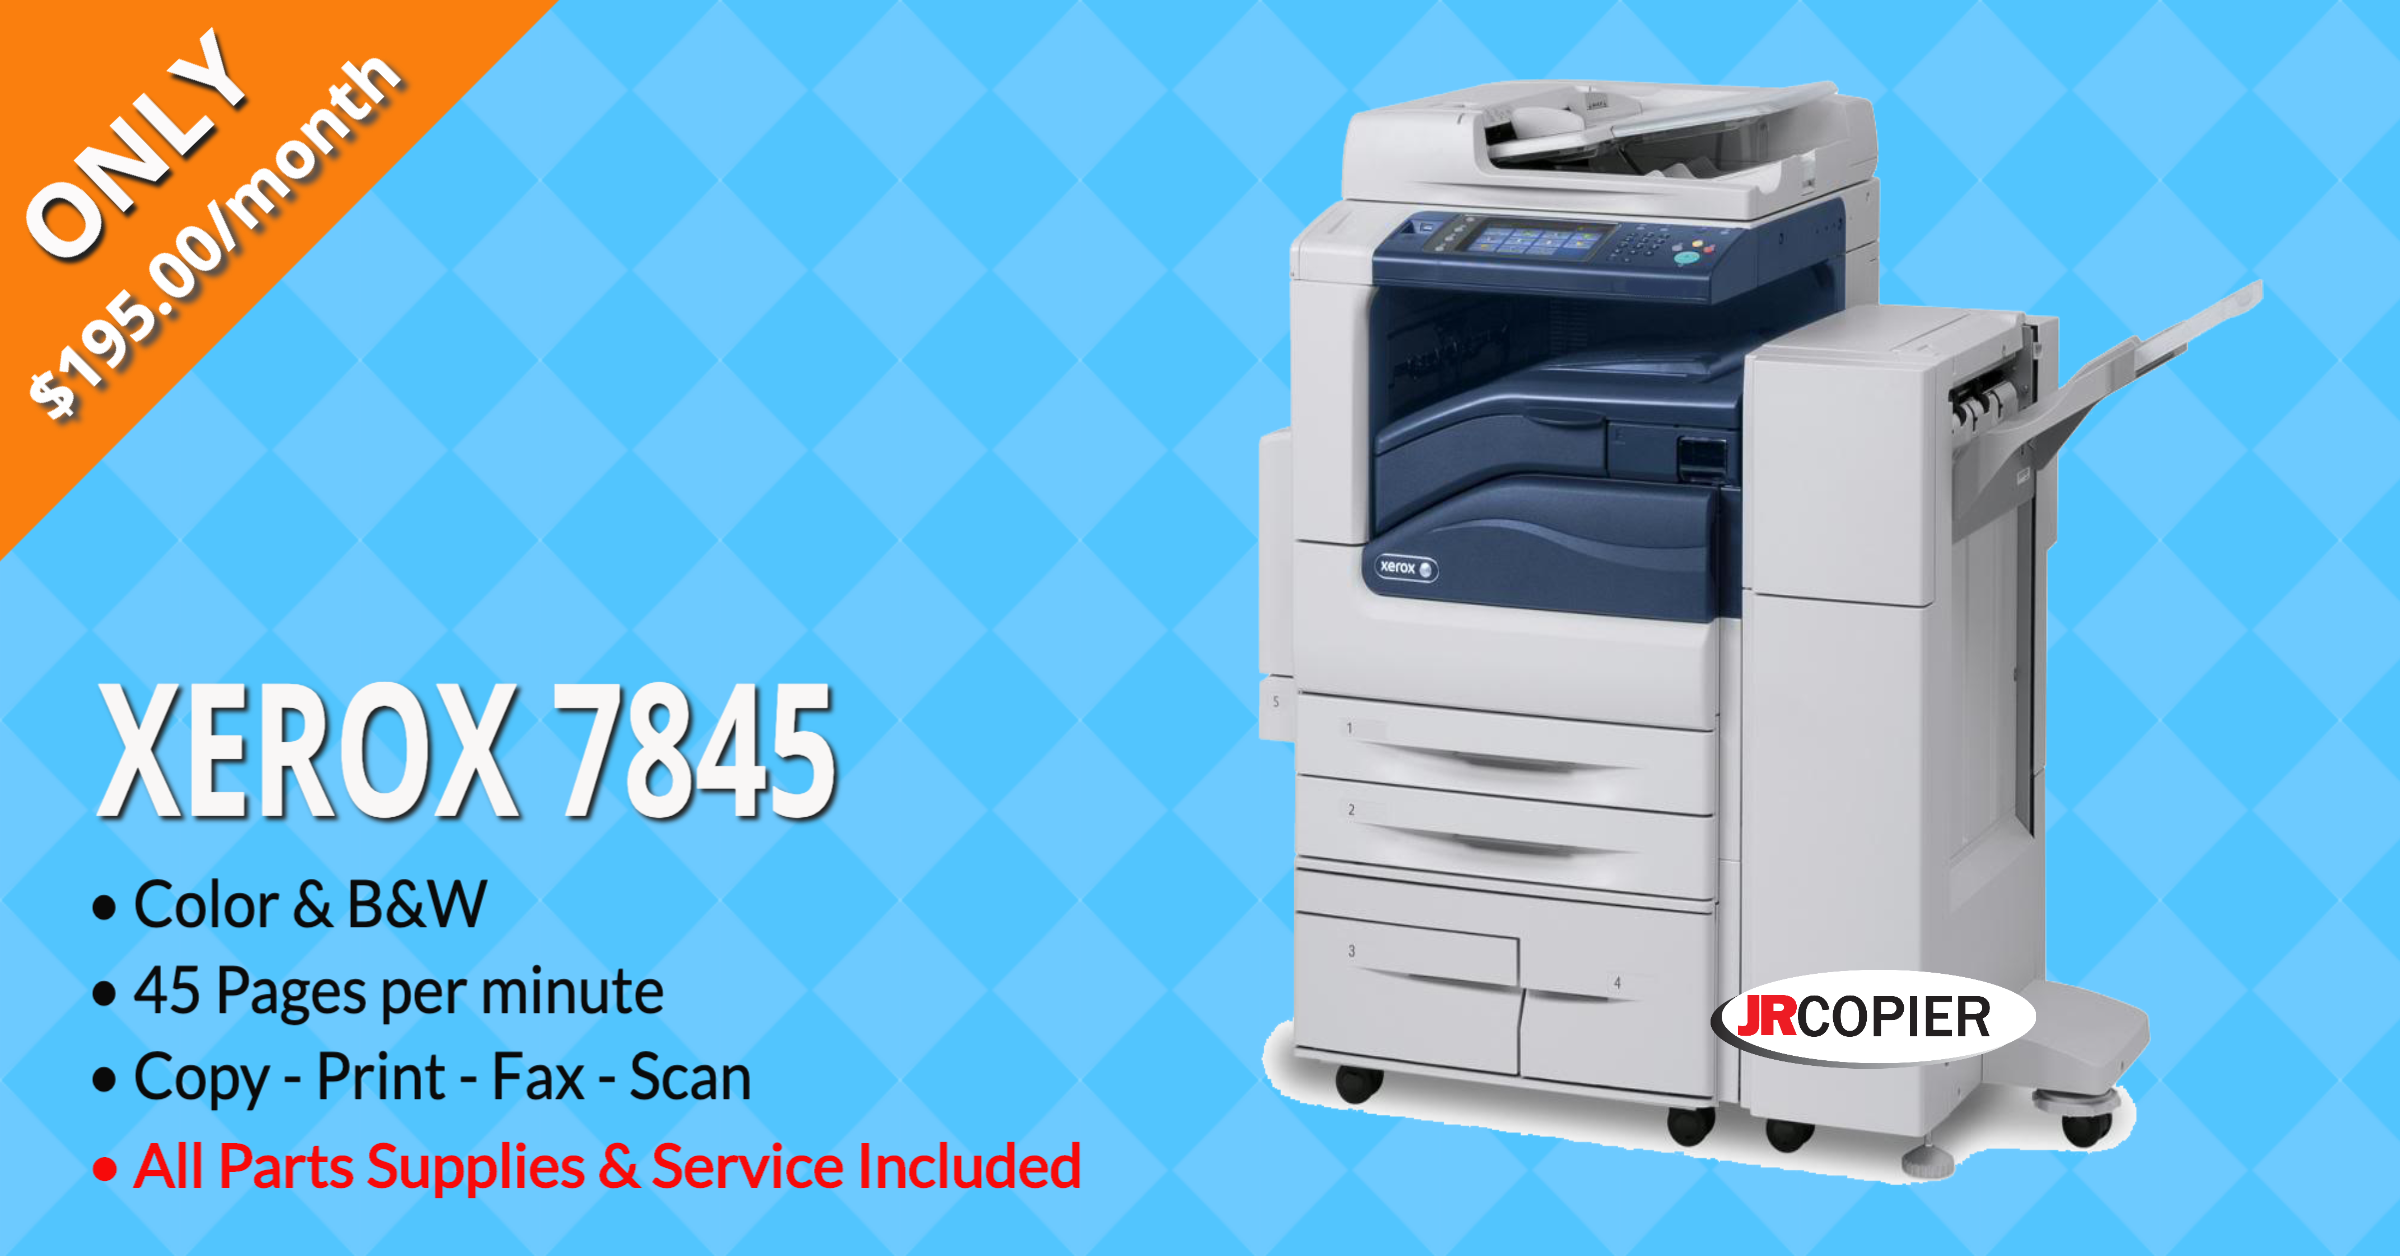 Printer Rental Services 06076